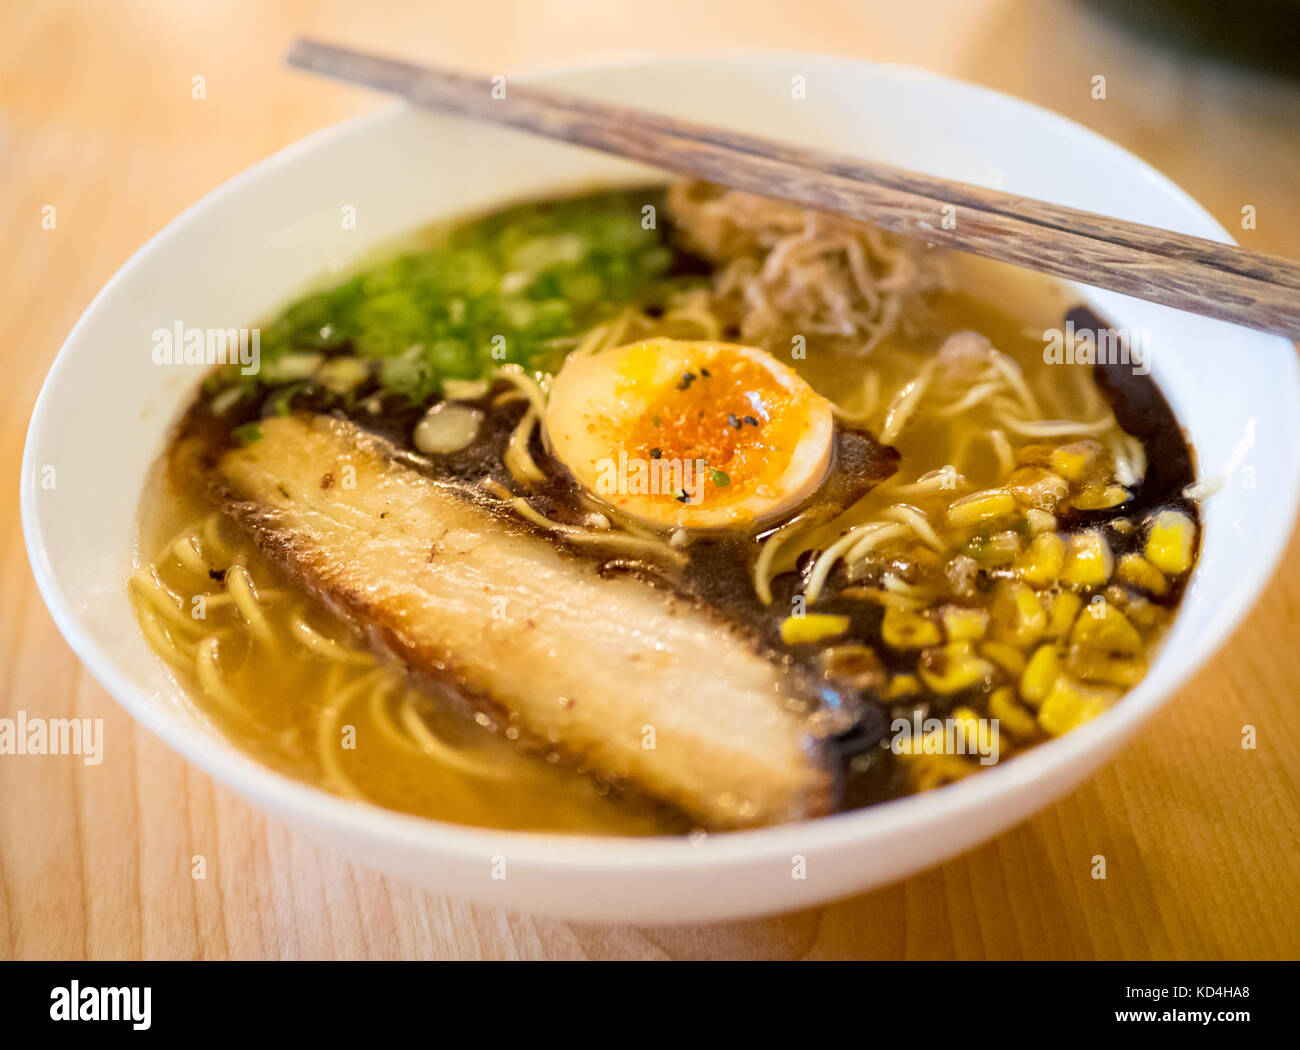 Japanese ramen noodles (prairie pork shio) from the Prairie Noodle Shop in Edmonton, Alberta, Canada. - Stock Image